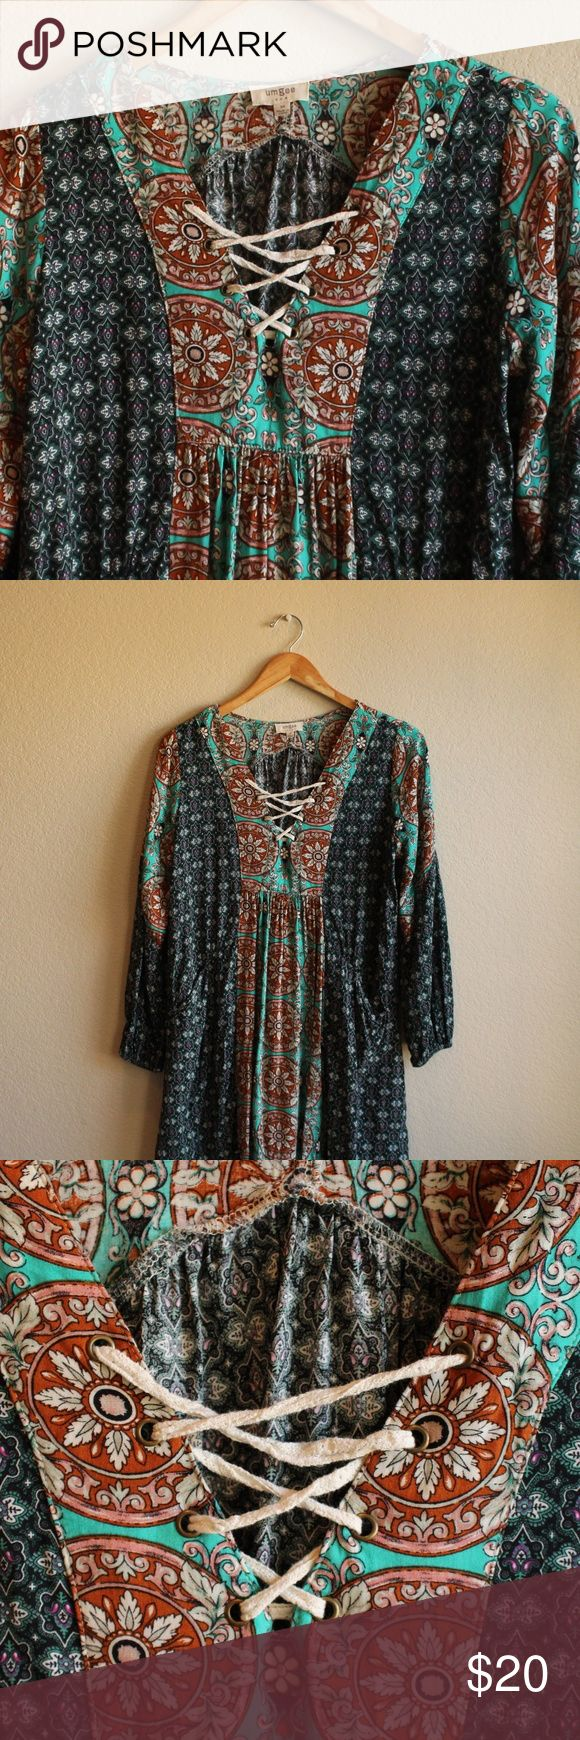 Women's Peasant Dress with Pockets Multi-color peasant dress with lace up detail in the front. This dress also has pockets! Worn and washed a few times. Very comfortable and cute with a gladiator sandal and simple cross body purse. Umgee Dresses Long Sleeve